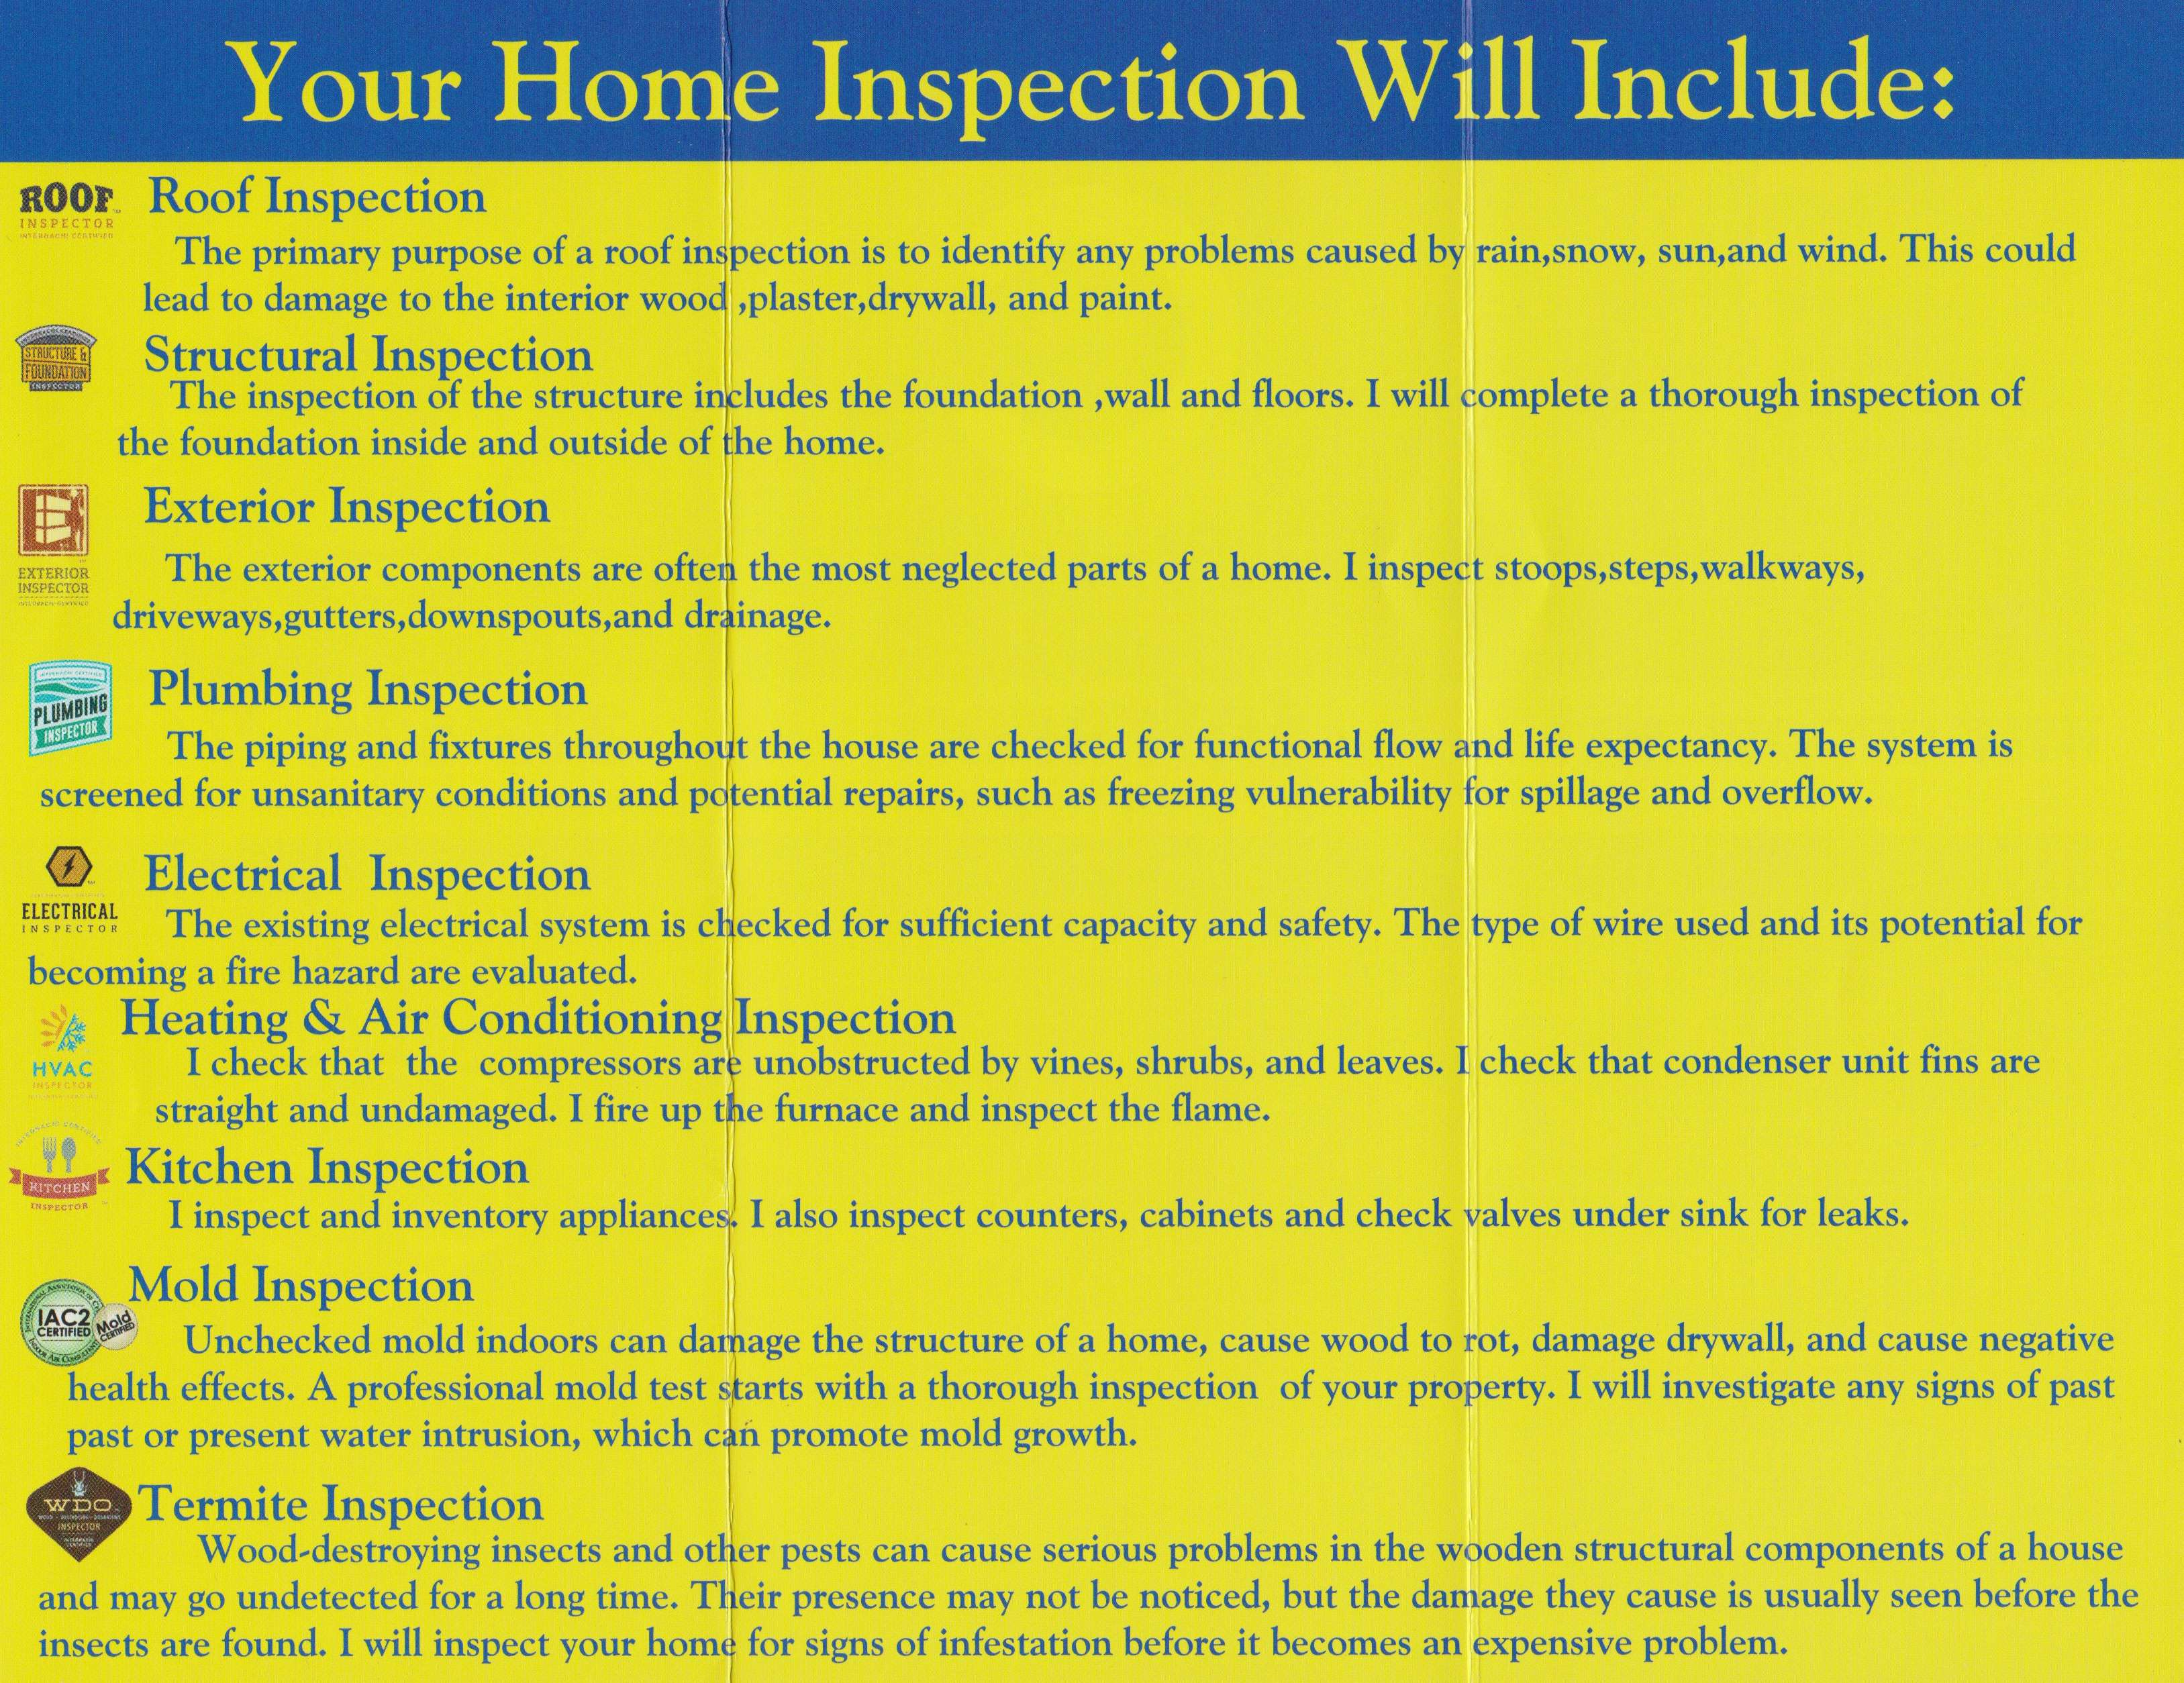 Michigan Home Inspection Company offers home inspection, radon gas testing, and thermal imaging services in Wyandotte, MI